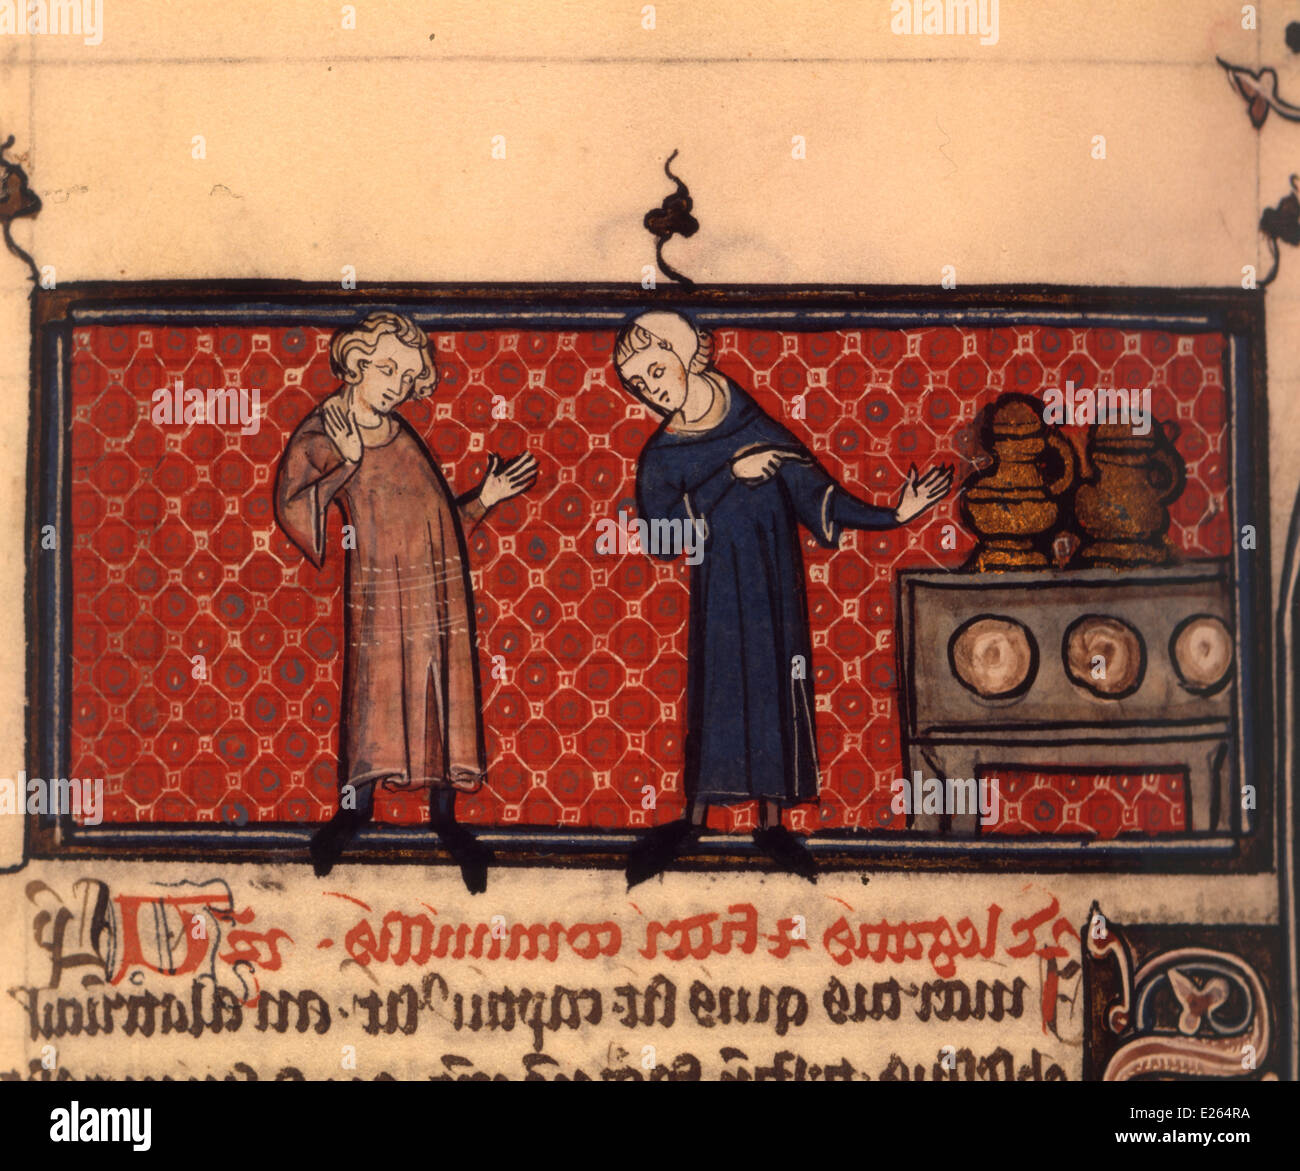 Middle Ages,miniature of Justinianus Pandette,ambrosiana library,milan - Stock Image